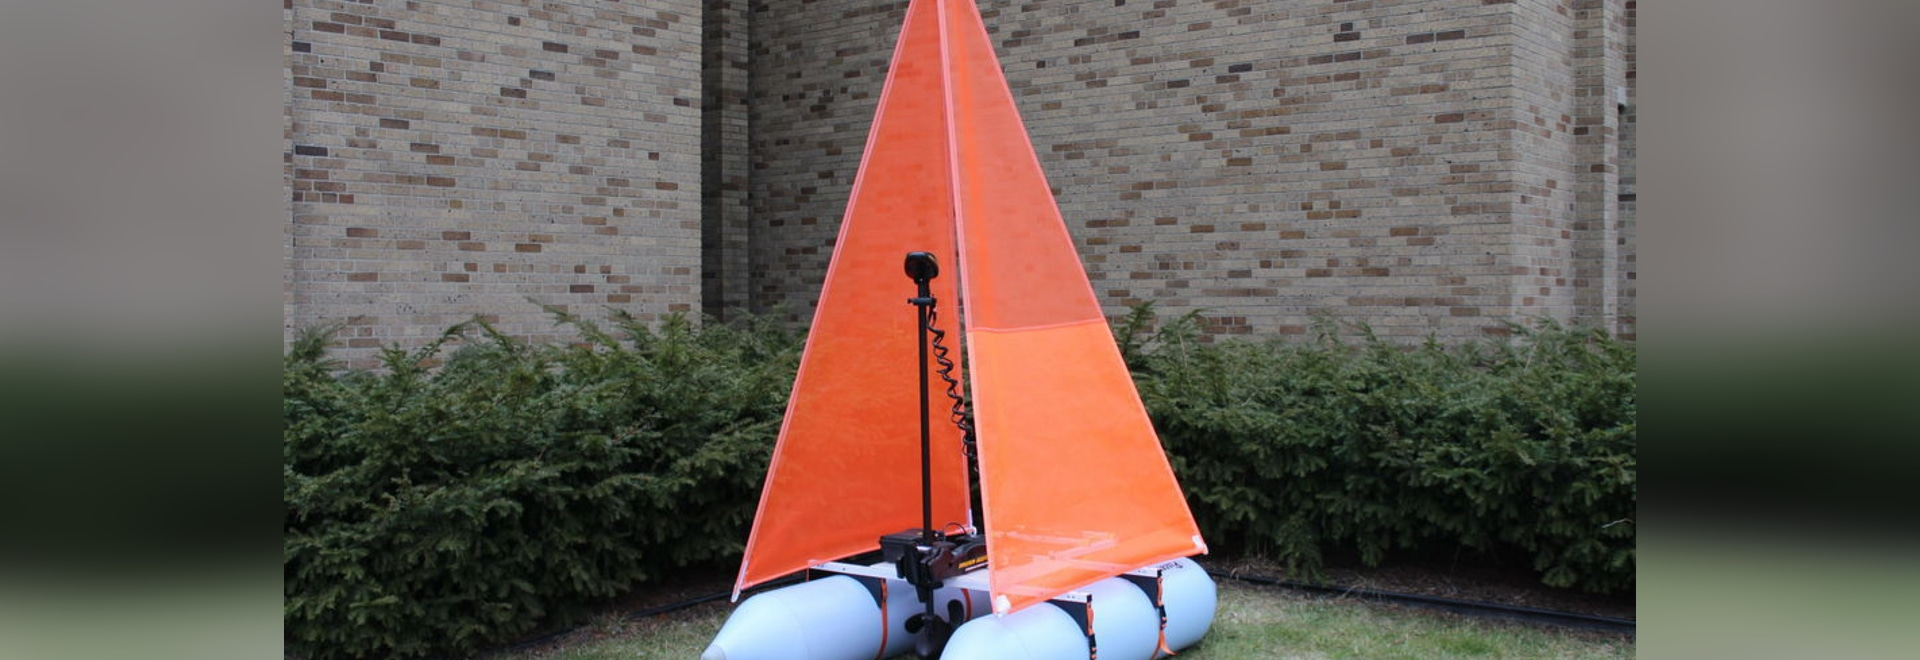 The MarkSetBot aims to provide the Premiere Sailing League USA with an easy and quickly adjustable solution to course management.